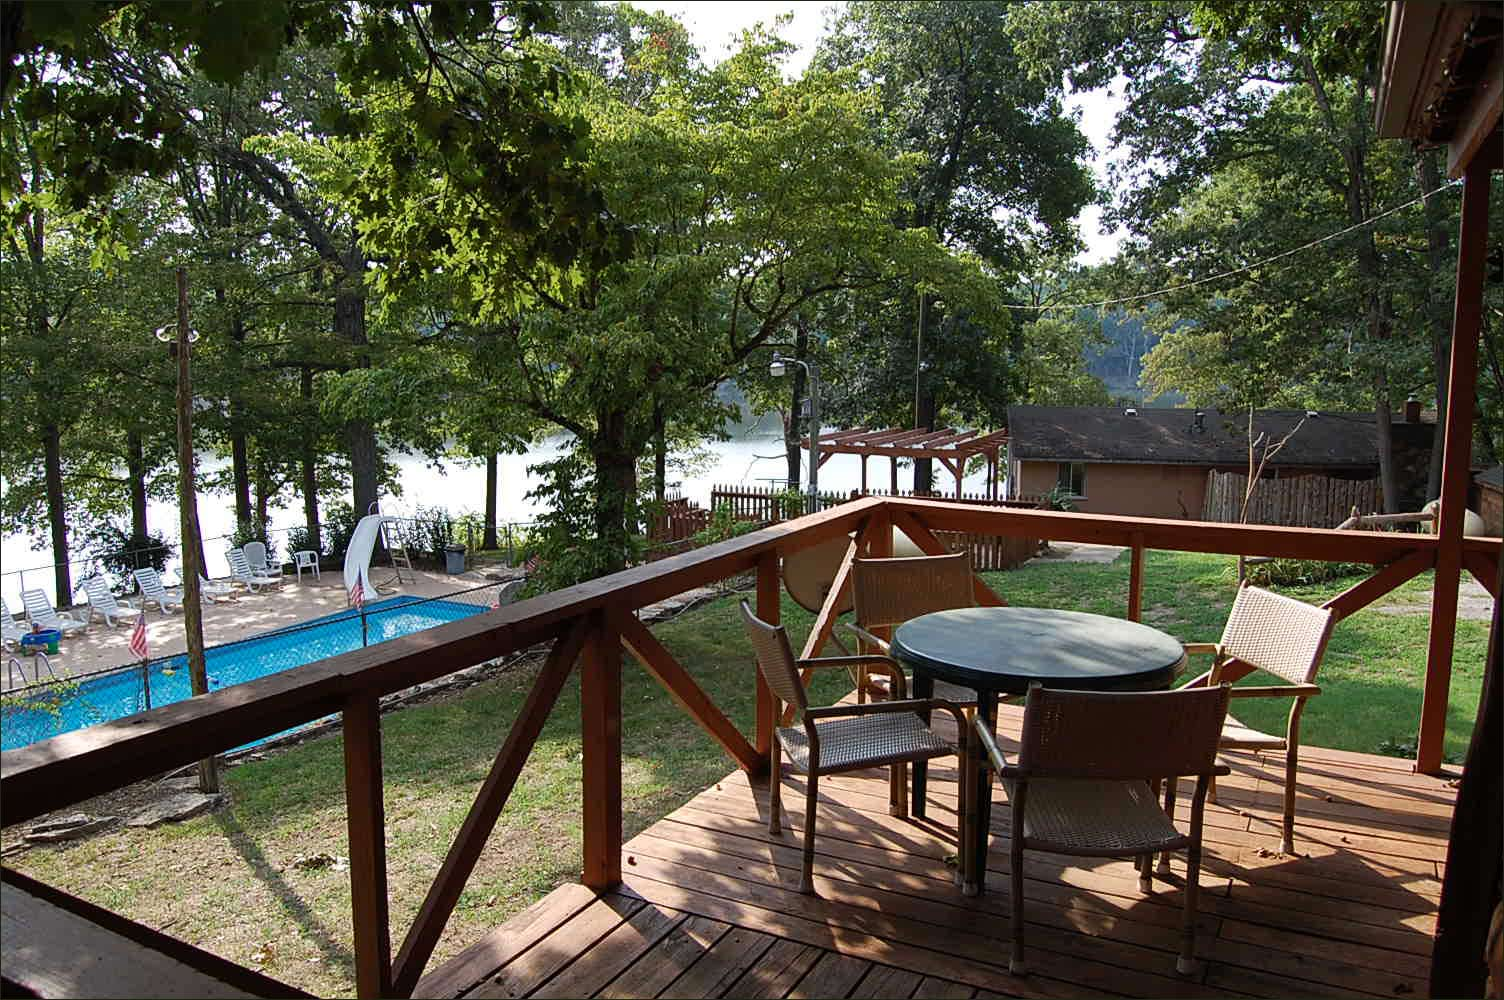 lake hickory exterior cabin hollow knob our rock shell mo cabins info resort table lodging